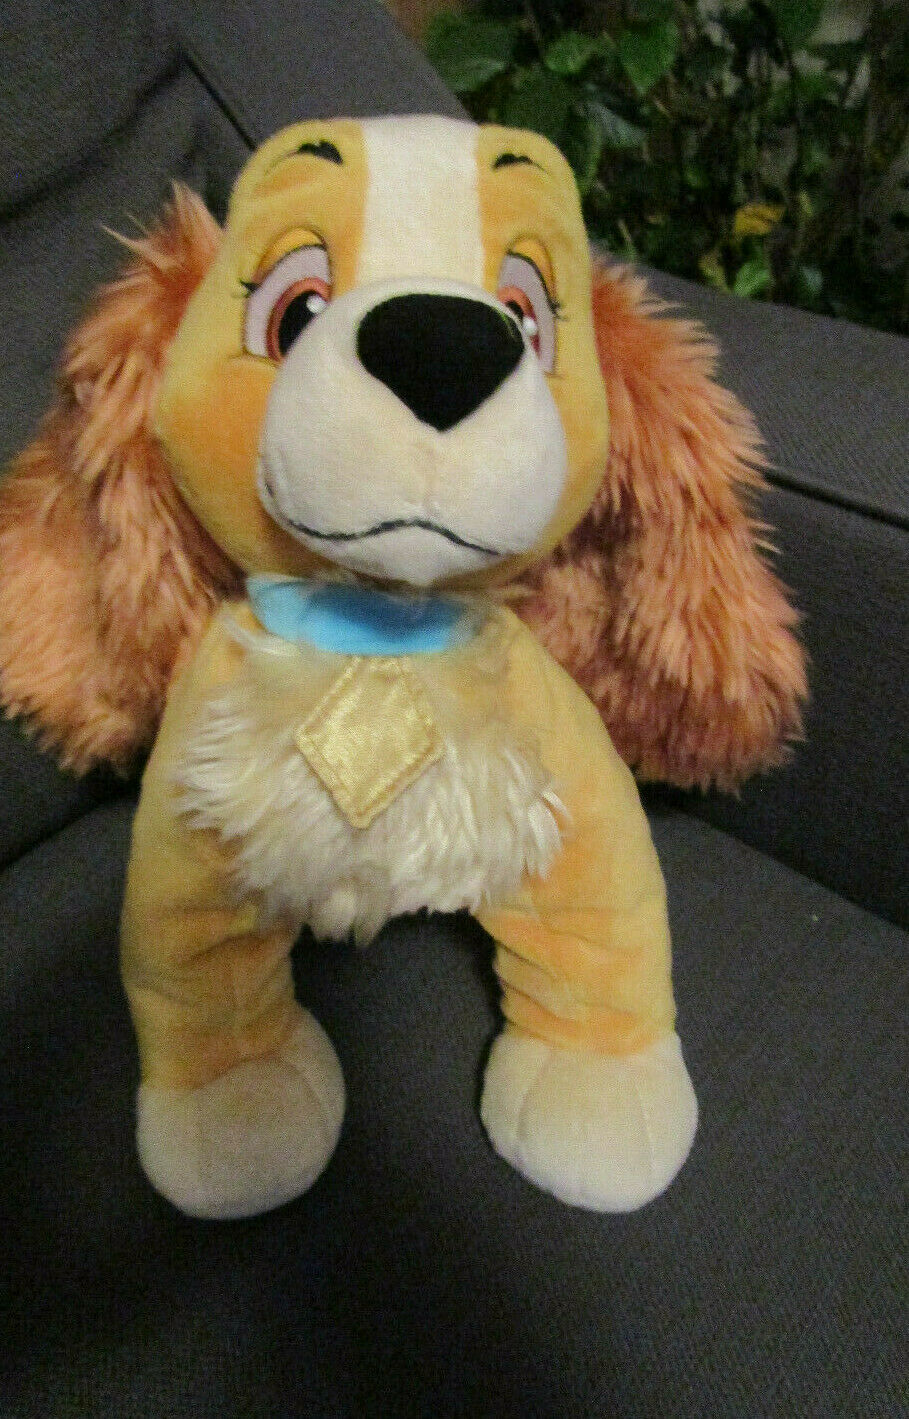 Disney Lady And The Tramp 8 Trusty Plush Stuffed Animals For Sale Online Ebay